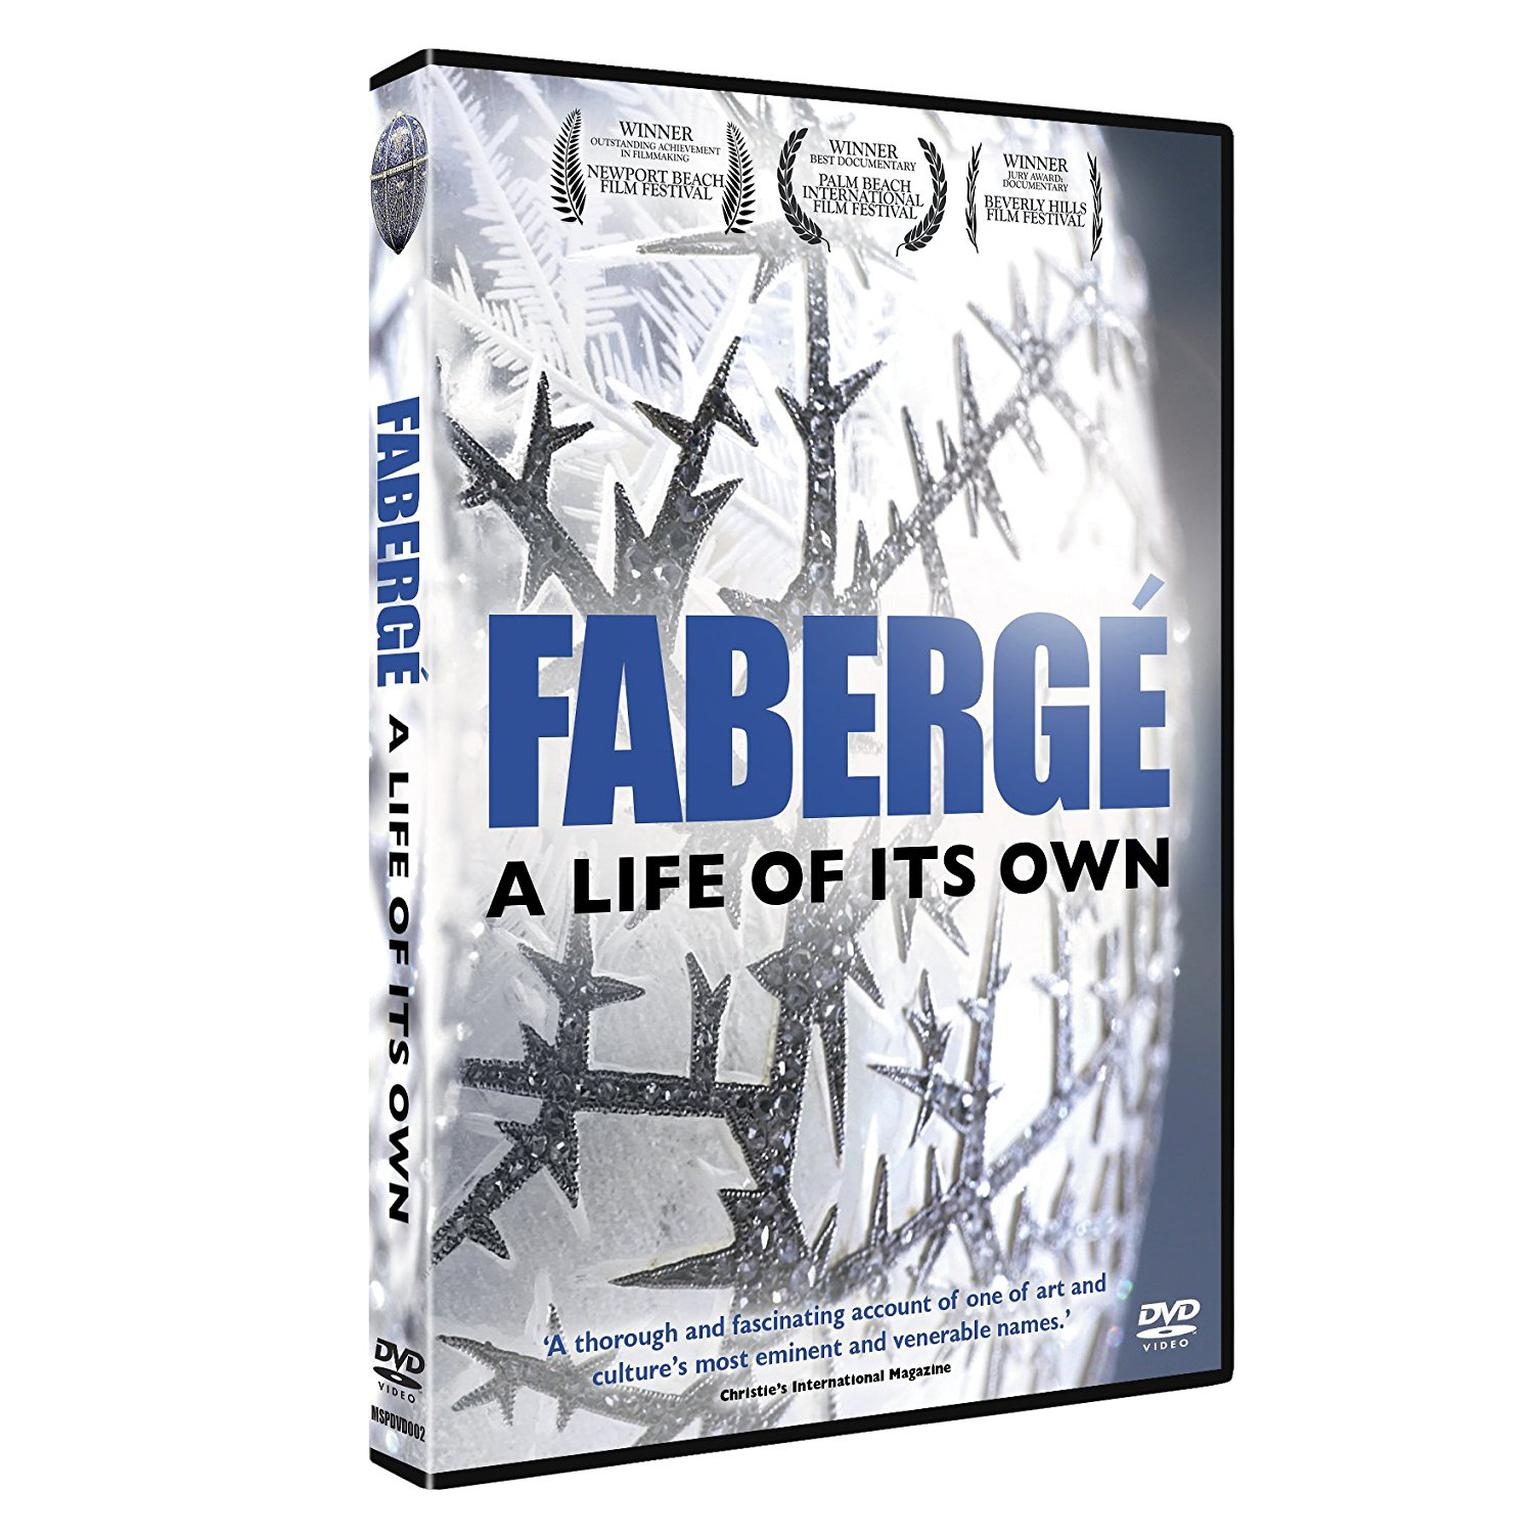 Faberge A Life of Its Own DVD out now